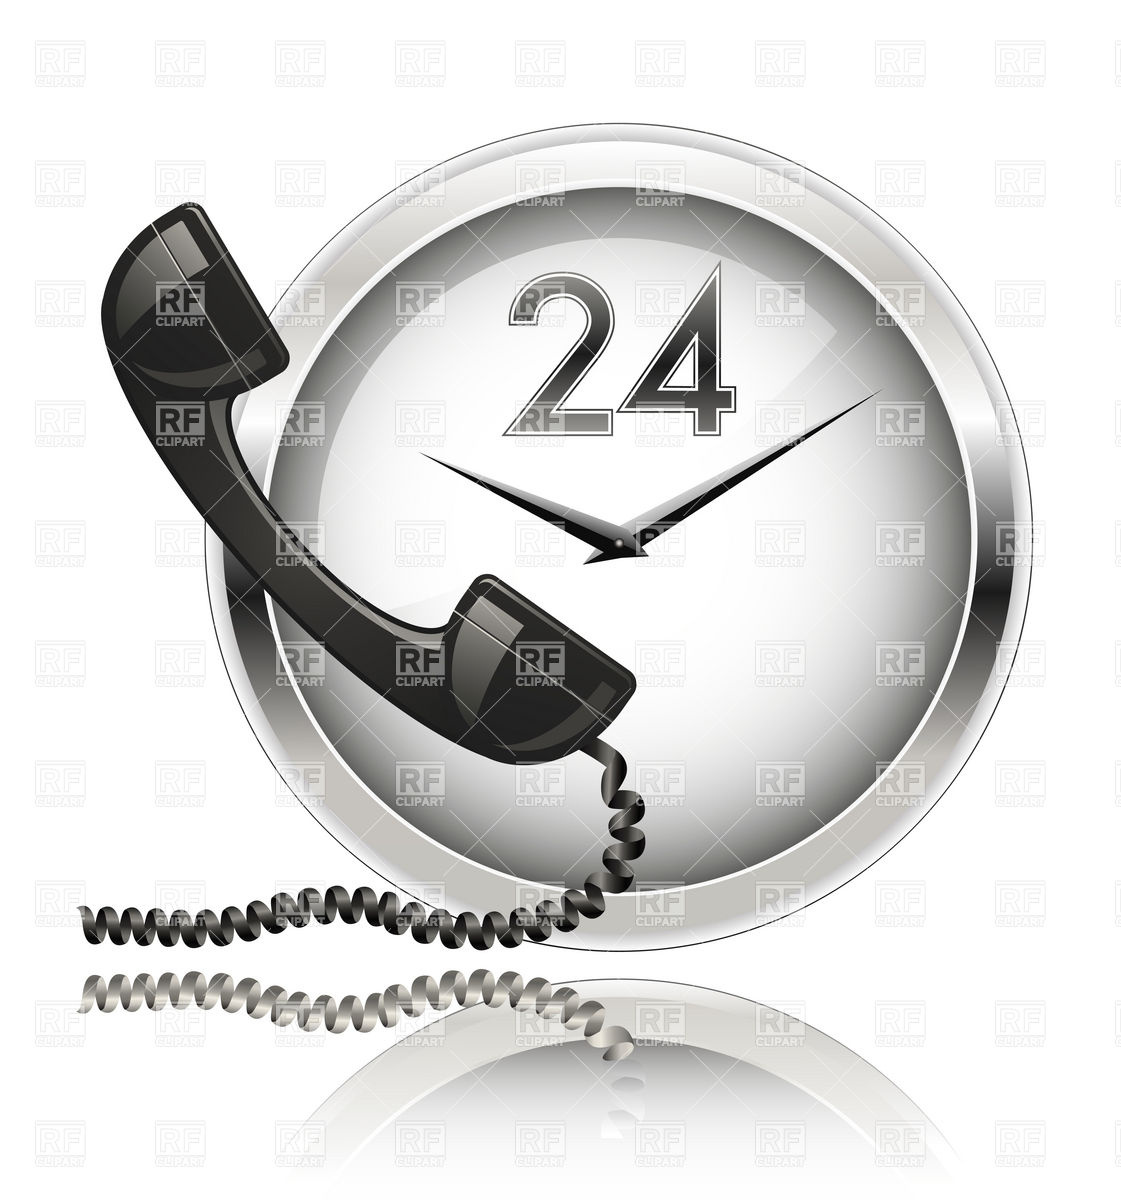 Wall Clock And Telephone Receiver   Round The Clock Support 5392